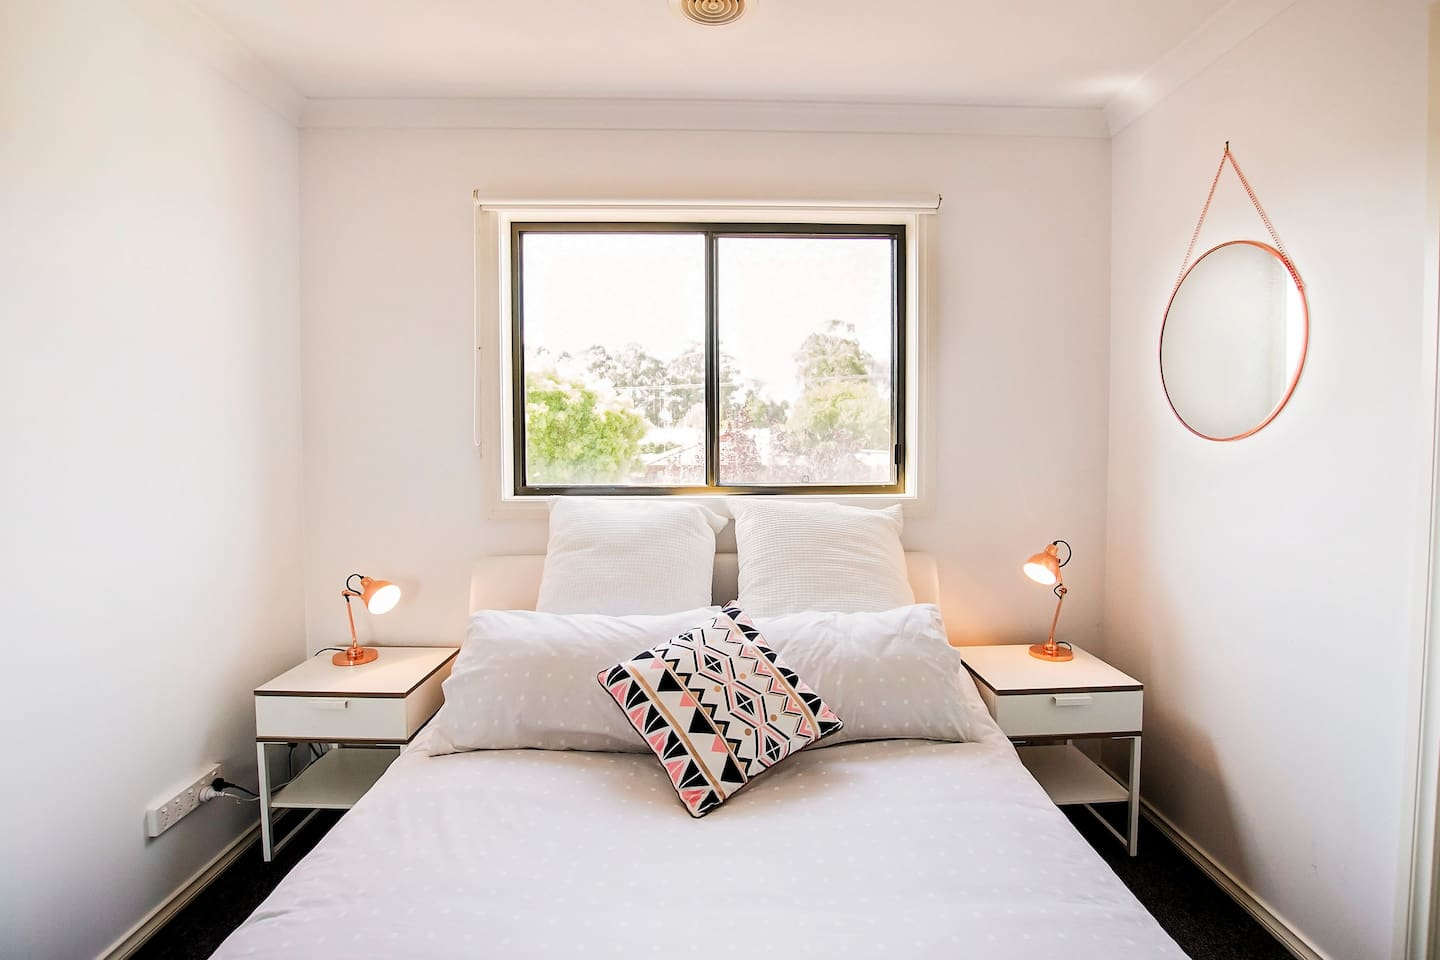 Echuca Moama Holiday Accommodation Free continental breakfast, 12pm checkout, 500m from main street, family friendly, carport, salt pool, BBQ, free wifi, Sheridan linen, Netflix, smart TV, iron, fridge/freezer, board game, ensuites. www. emha .com.au